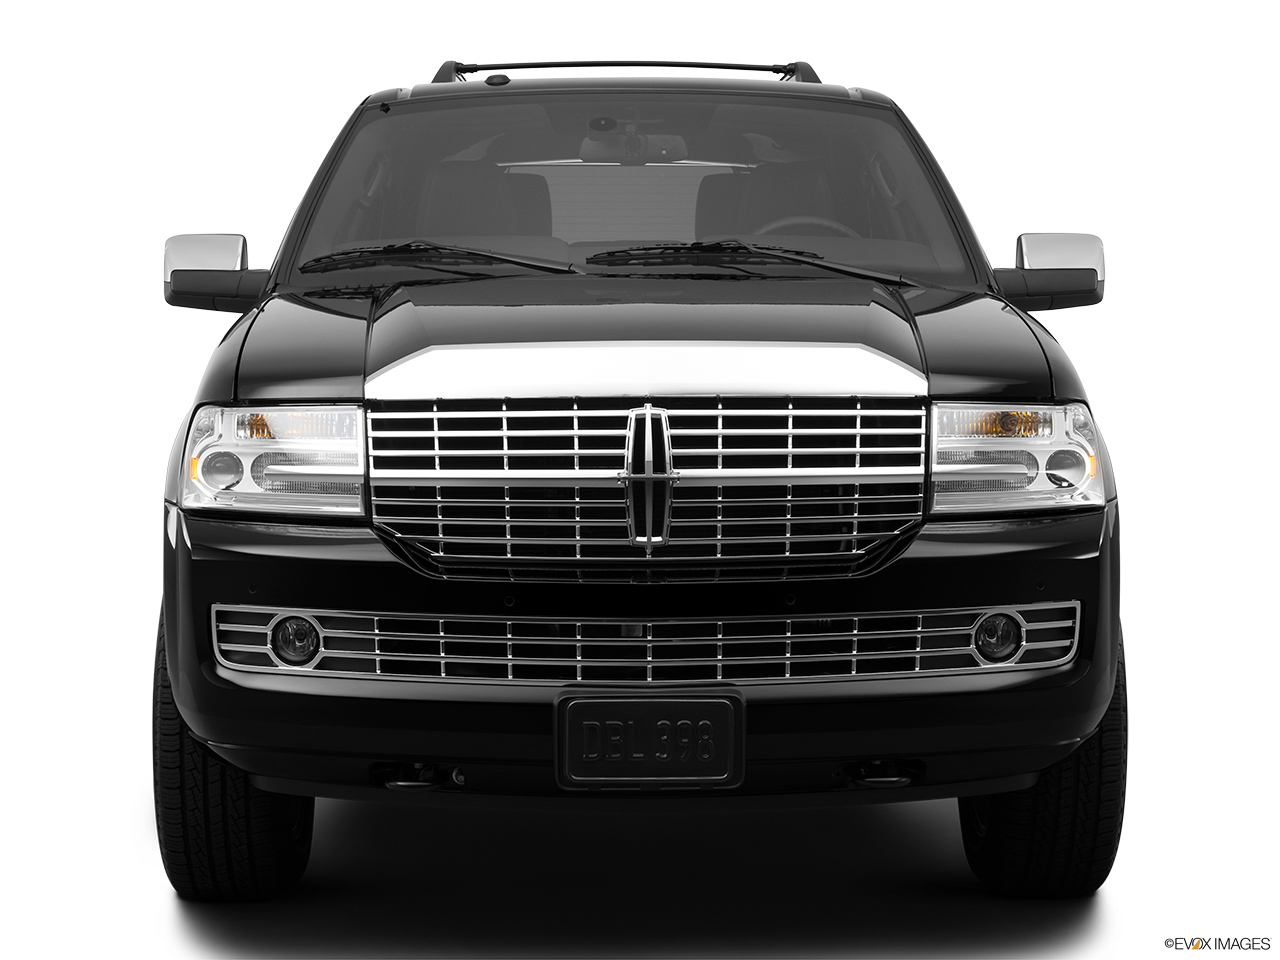 2012 Lincoln Navigator Base Low/wide front.